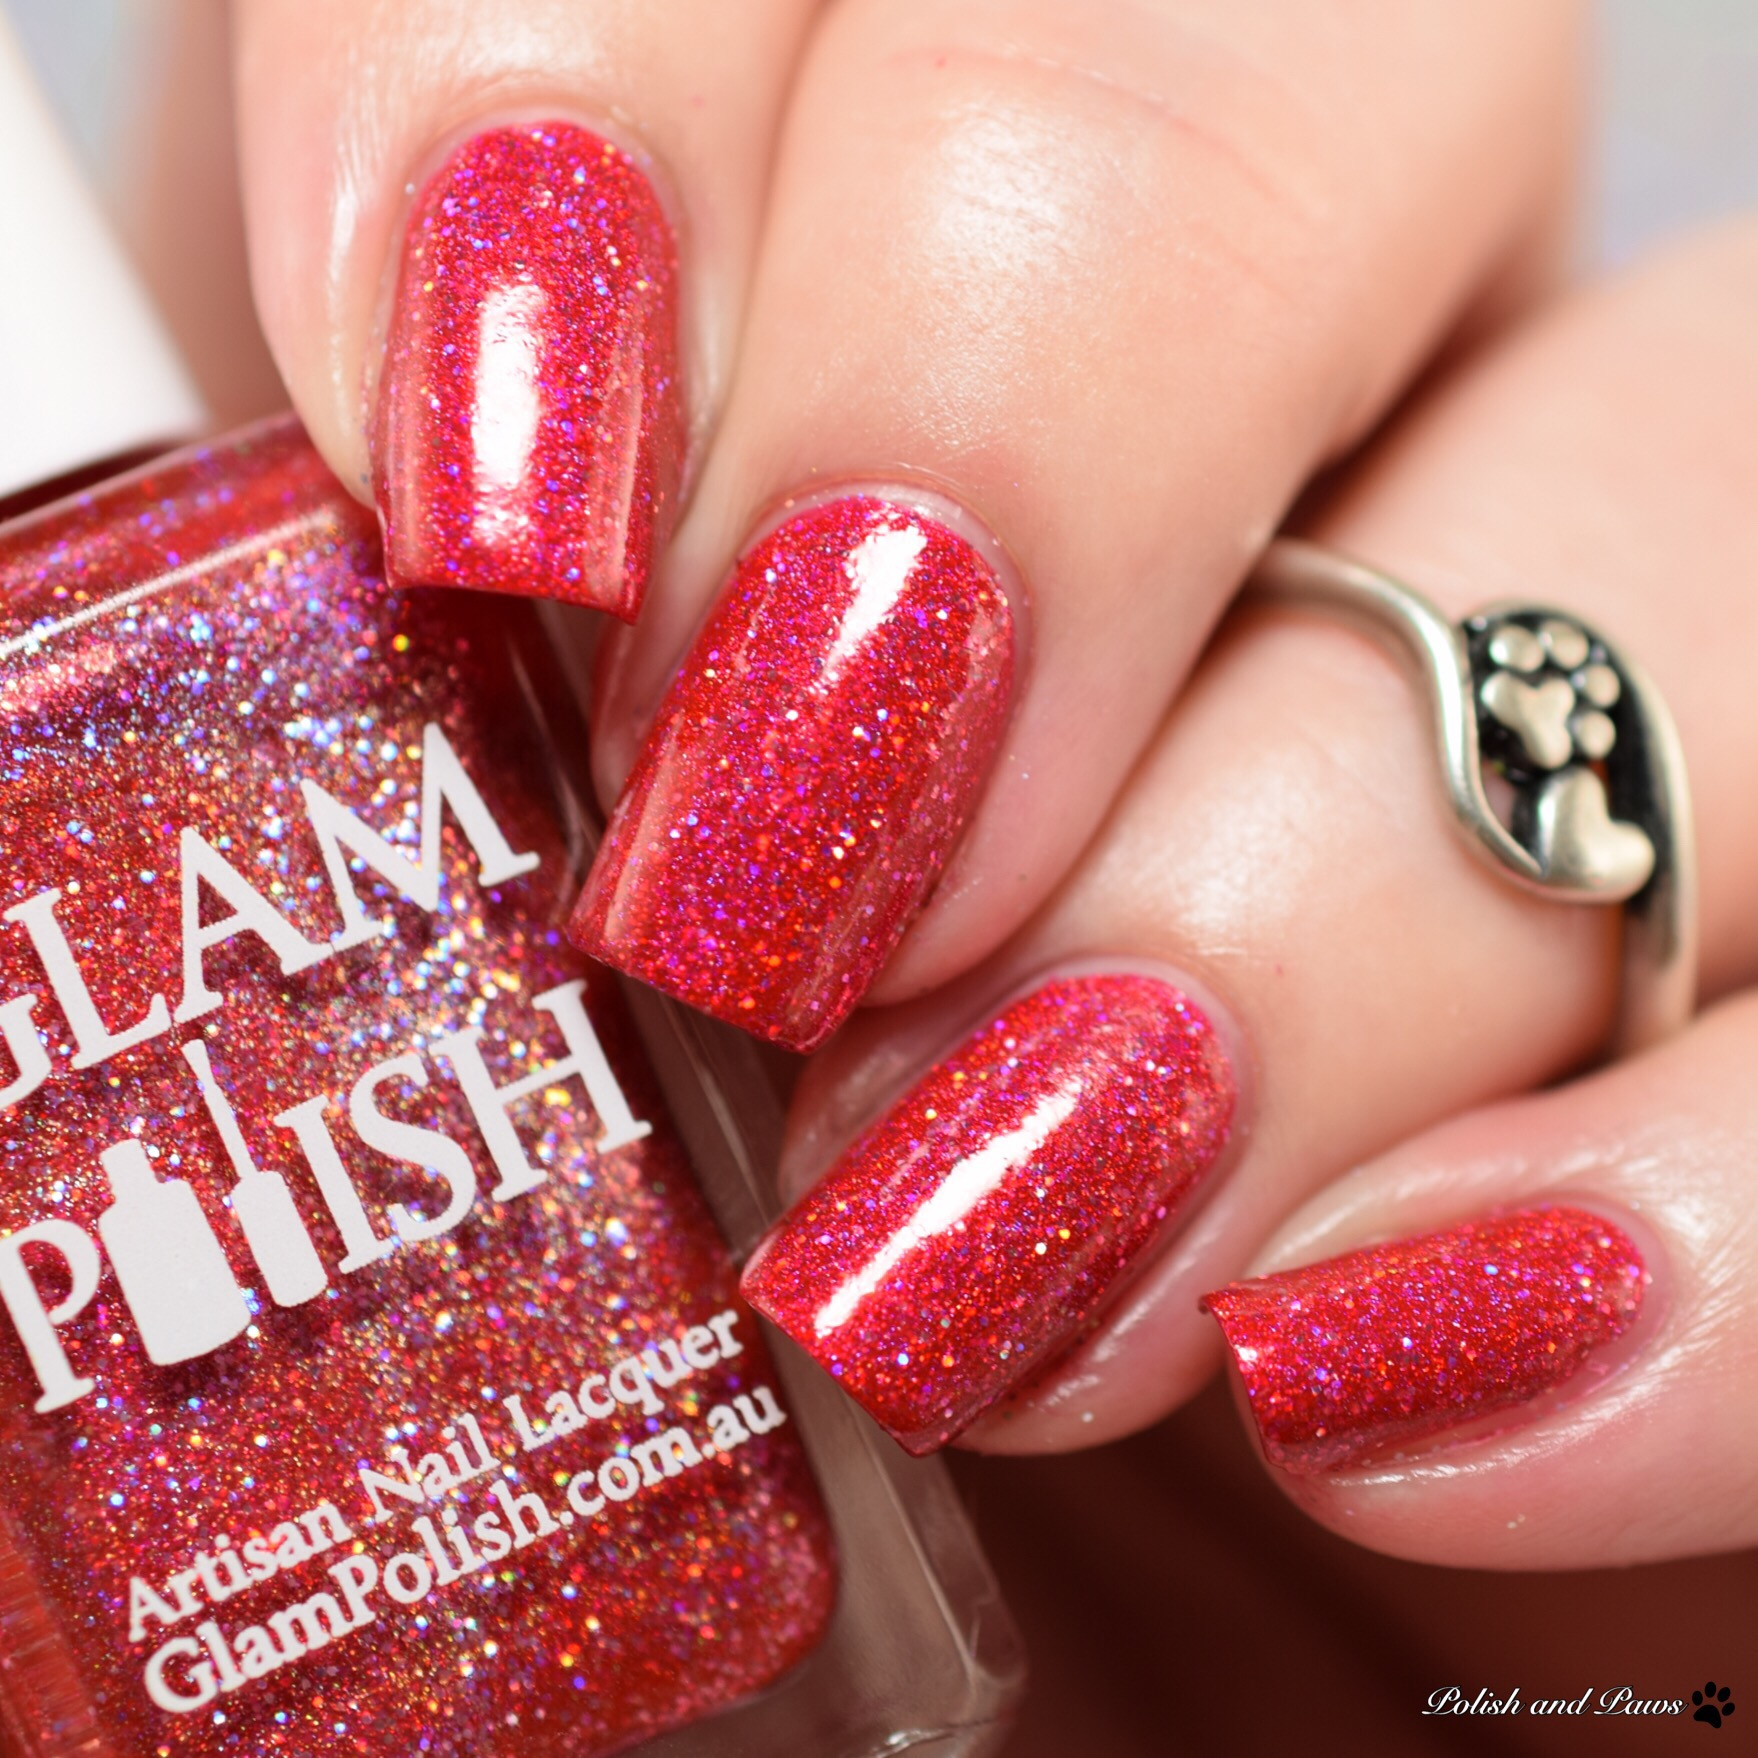 Glam Polish I'll see you in the Movies